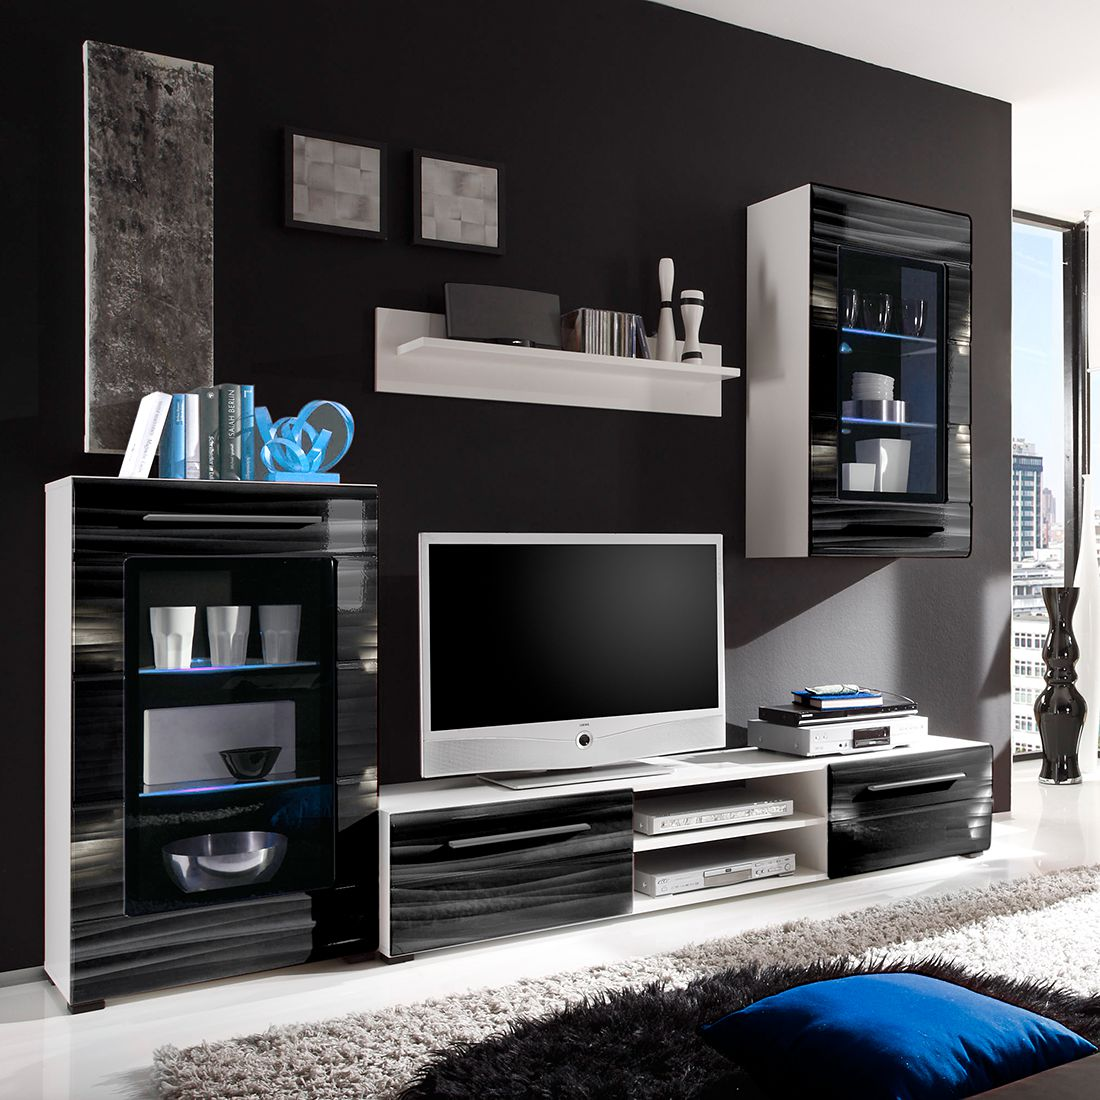 wohnwand motley i 4 teilig inklusive beleuchtung. Black Bedroom Furniture Sets. Home Design Ideas